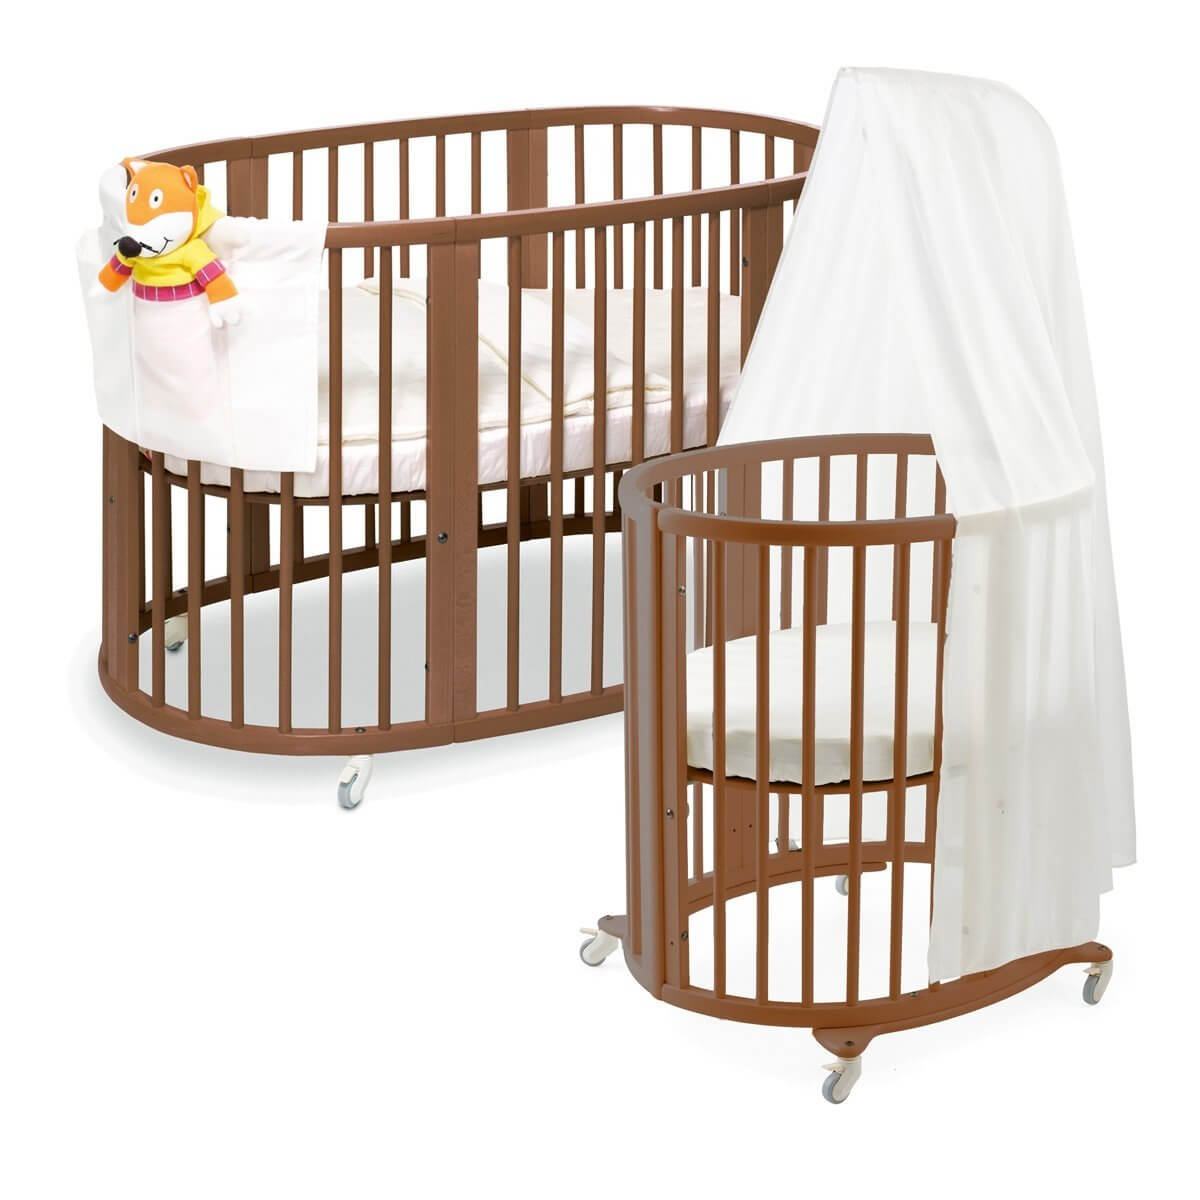 Image result for baby wood furniture